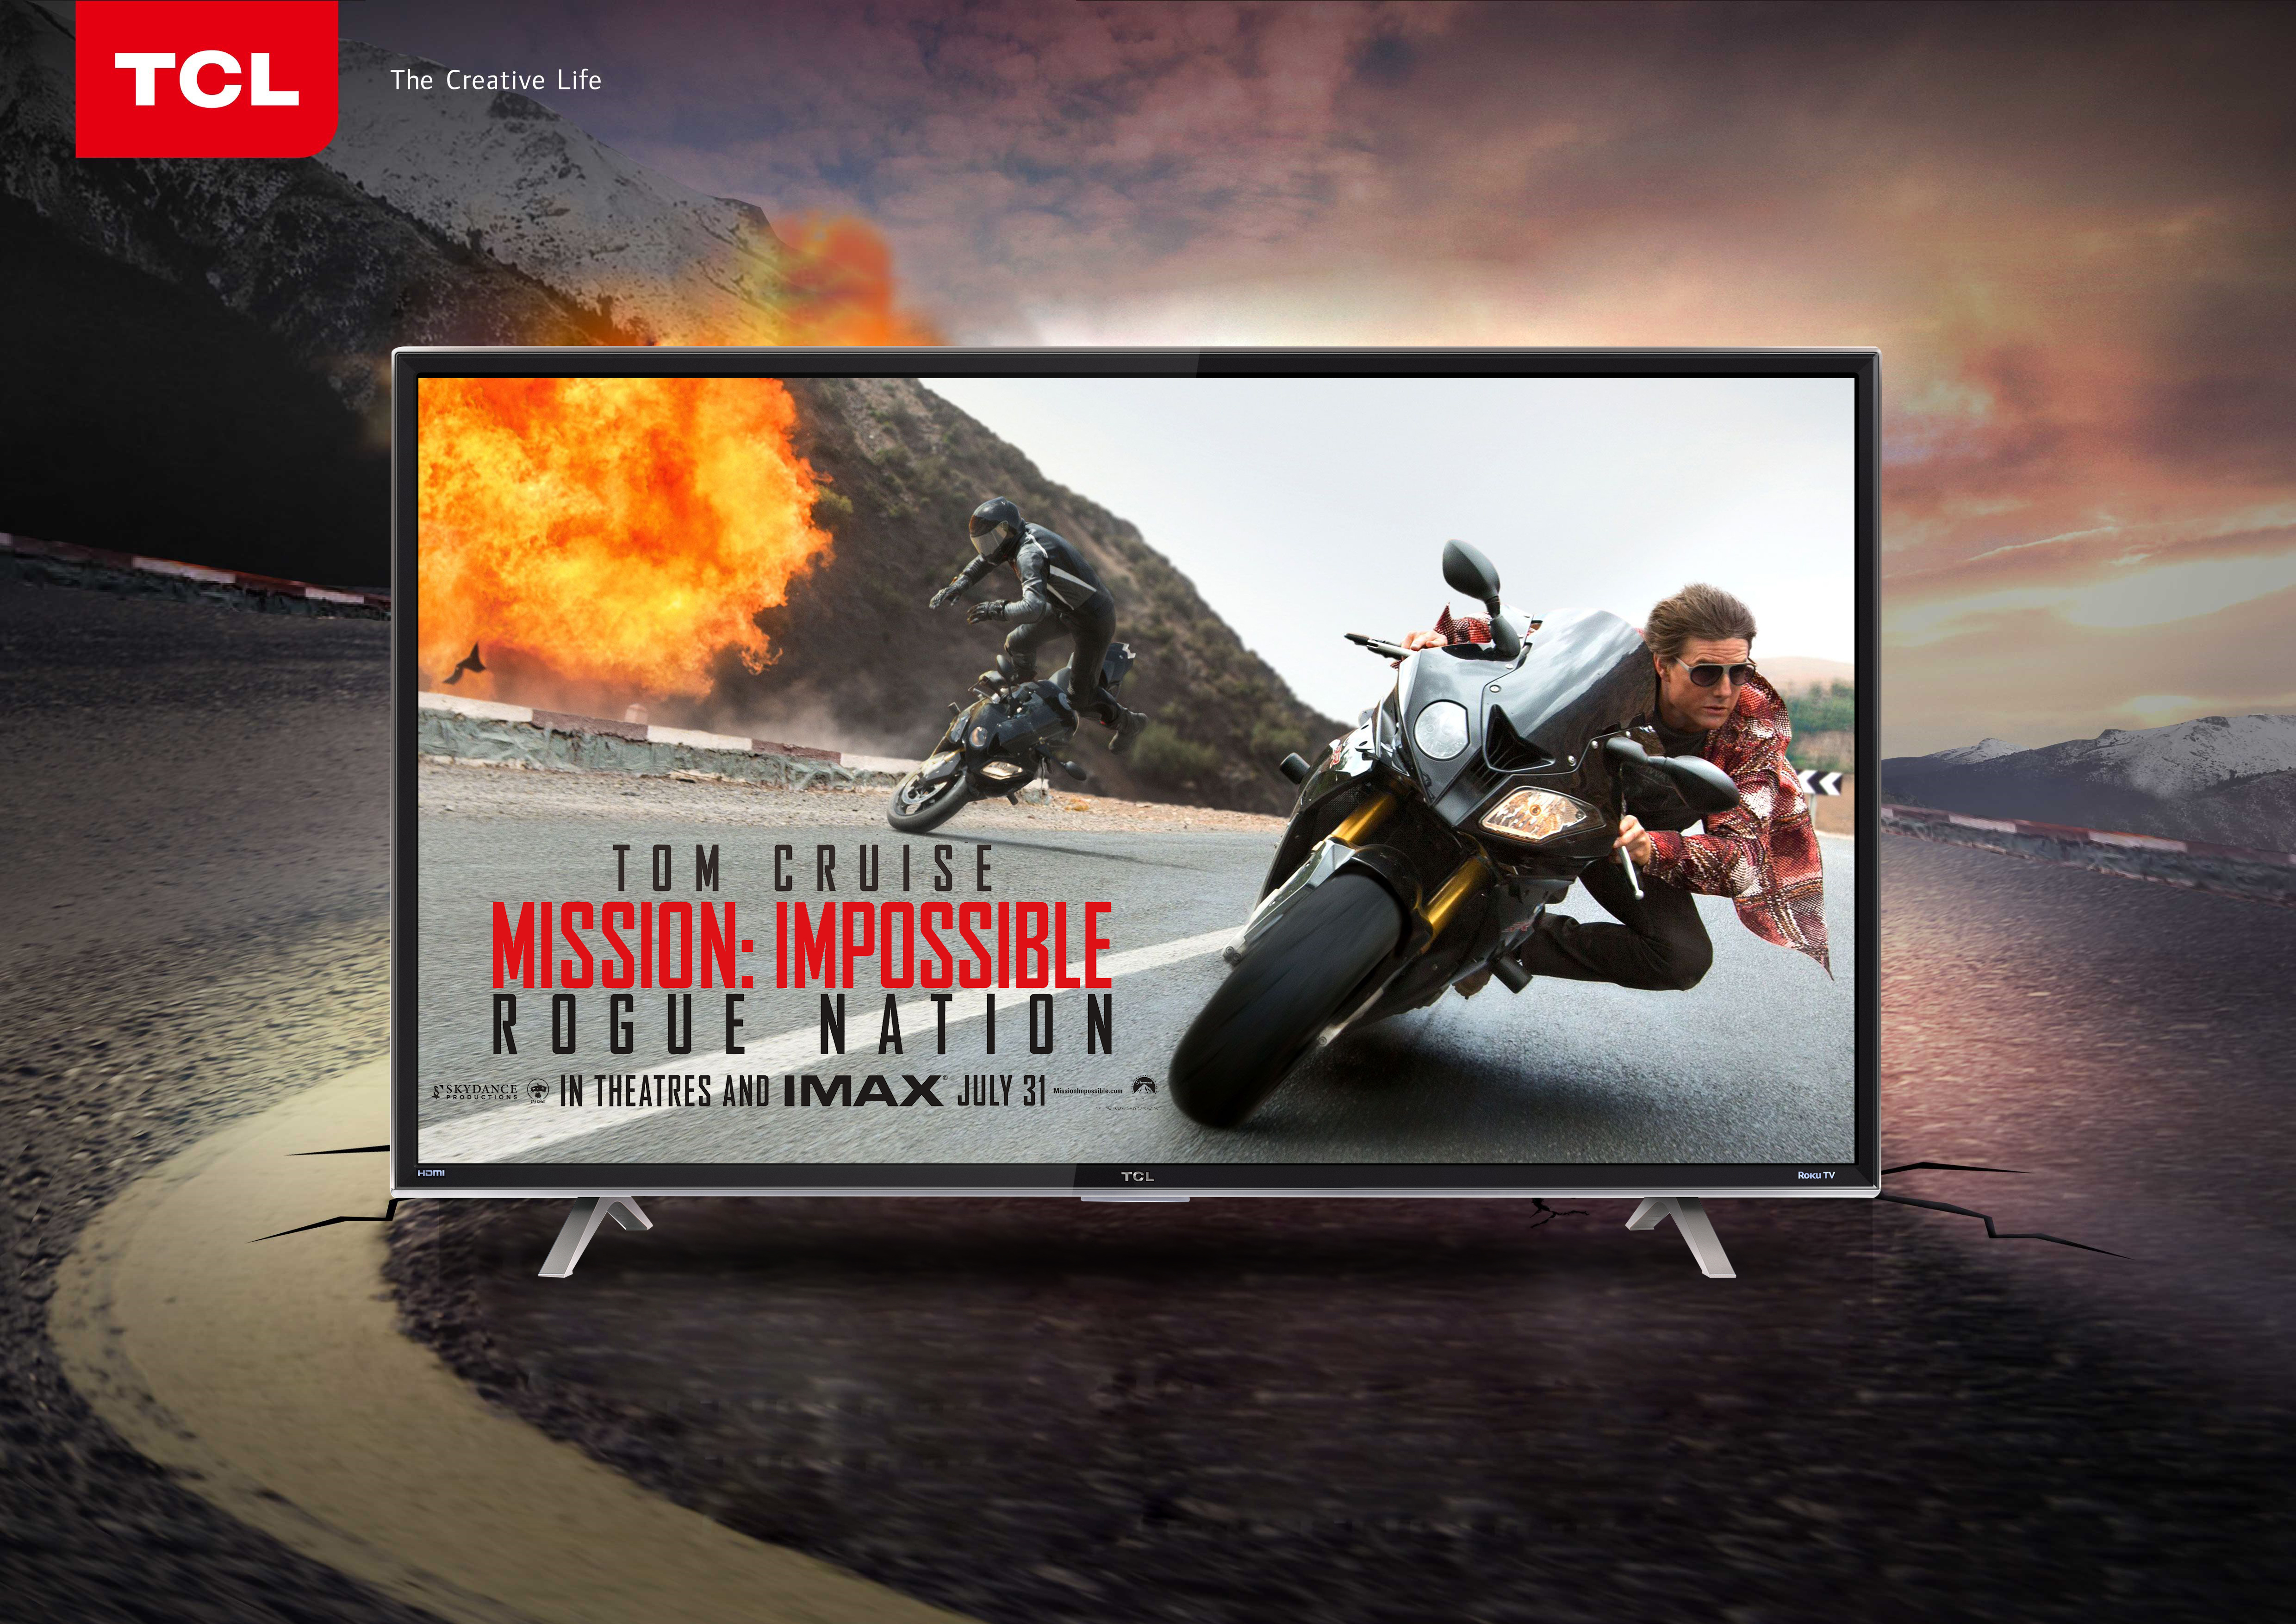 mission impossible rogue nation full movie free download in english hd